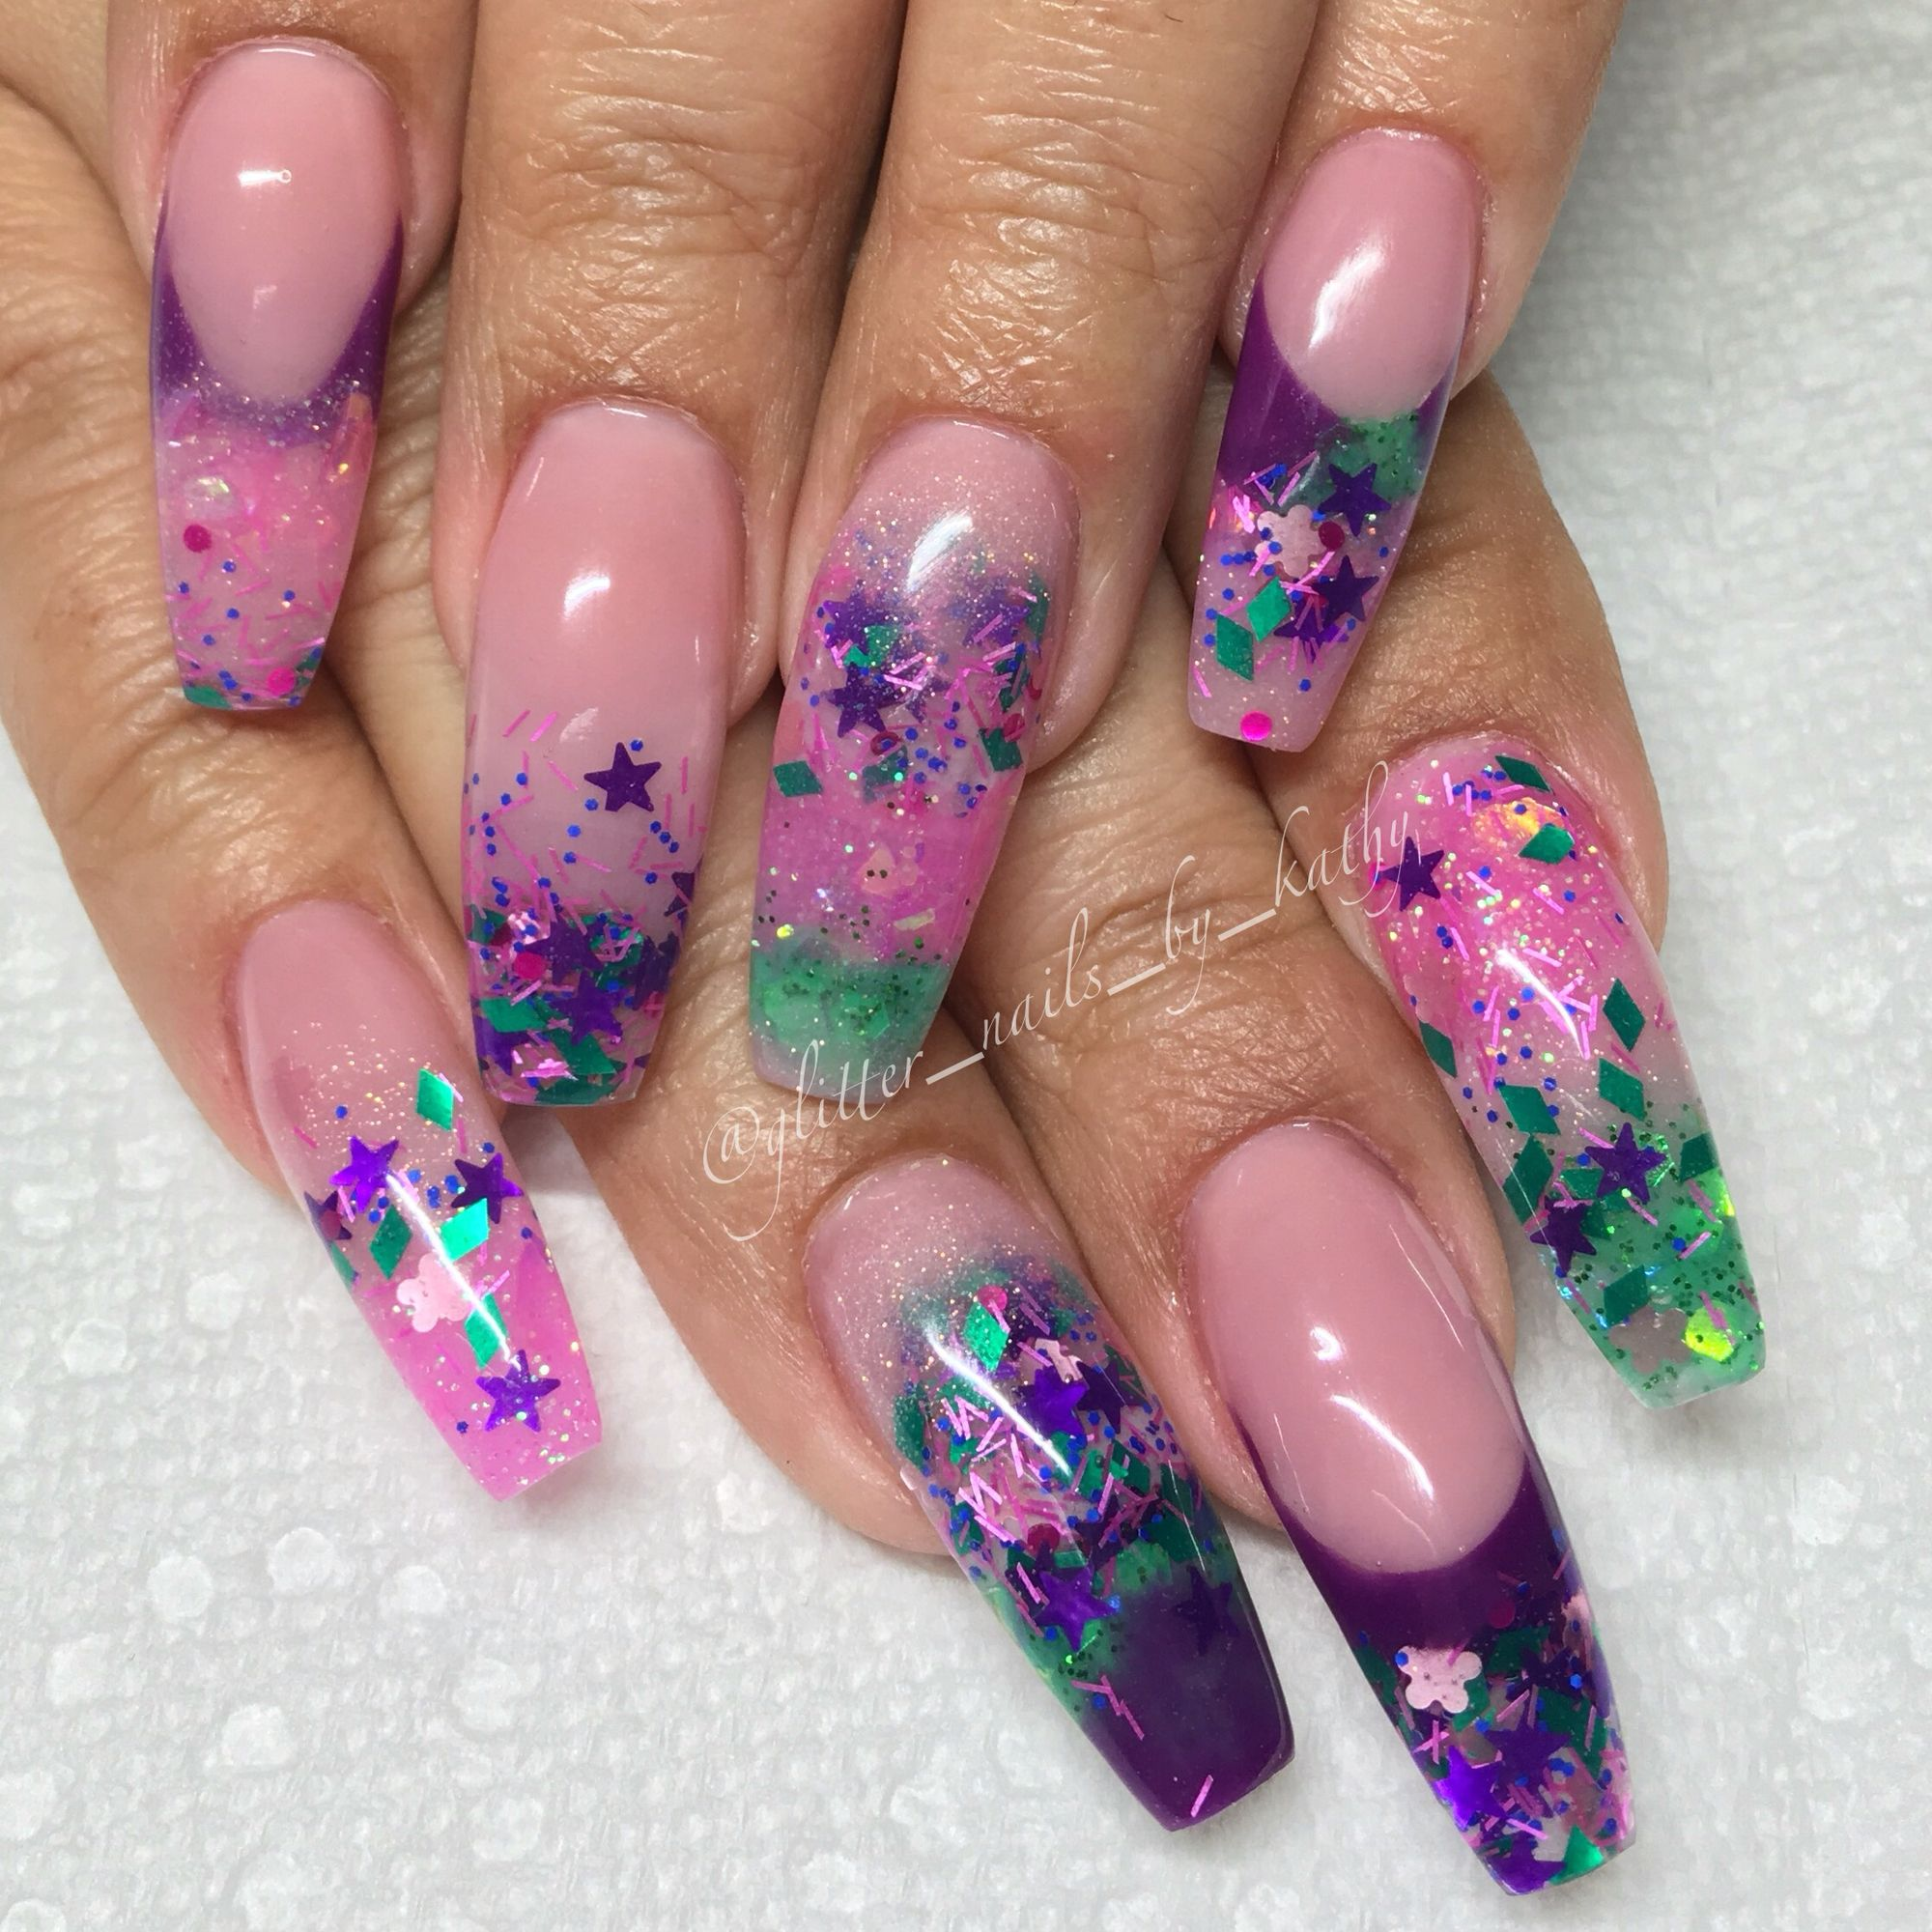 Licensed nail tech Downtown Brooklyn NY 20 deposit to book